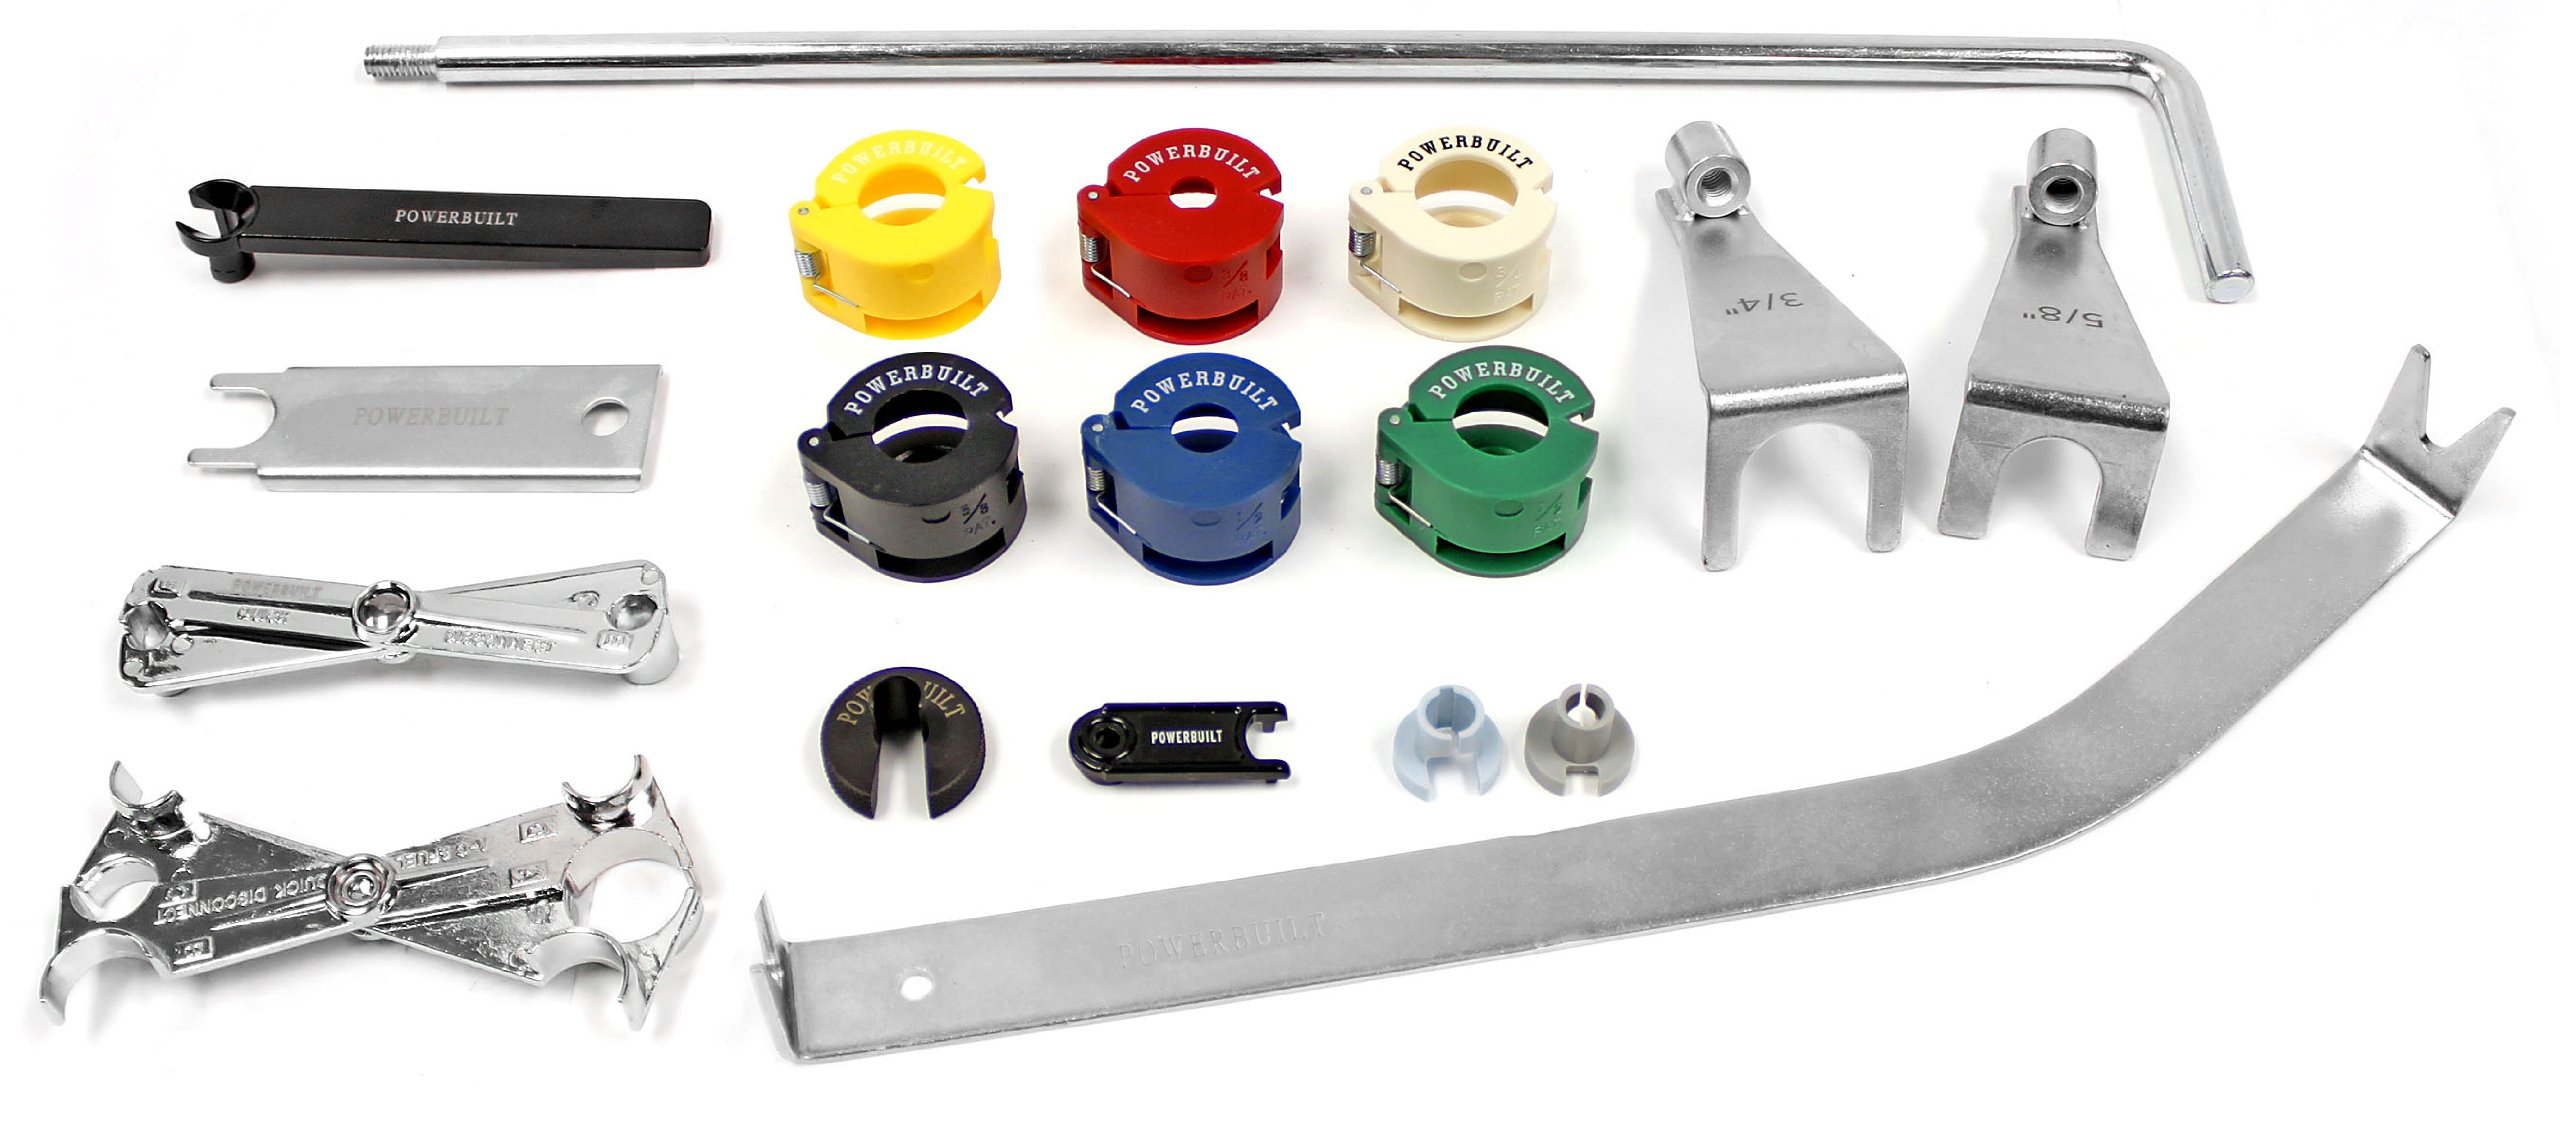 Powerbuilt Master Disconnect Kit For Ford, GM and Chrysler Vehicles, 648727 by Powerbuillt (Image #3)